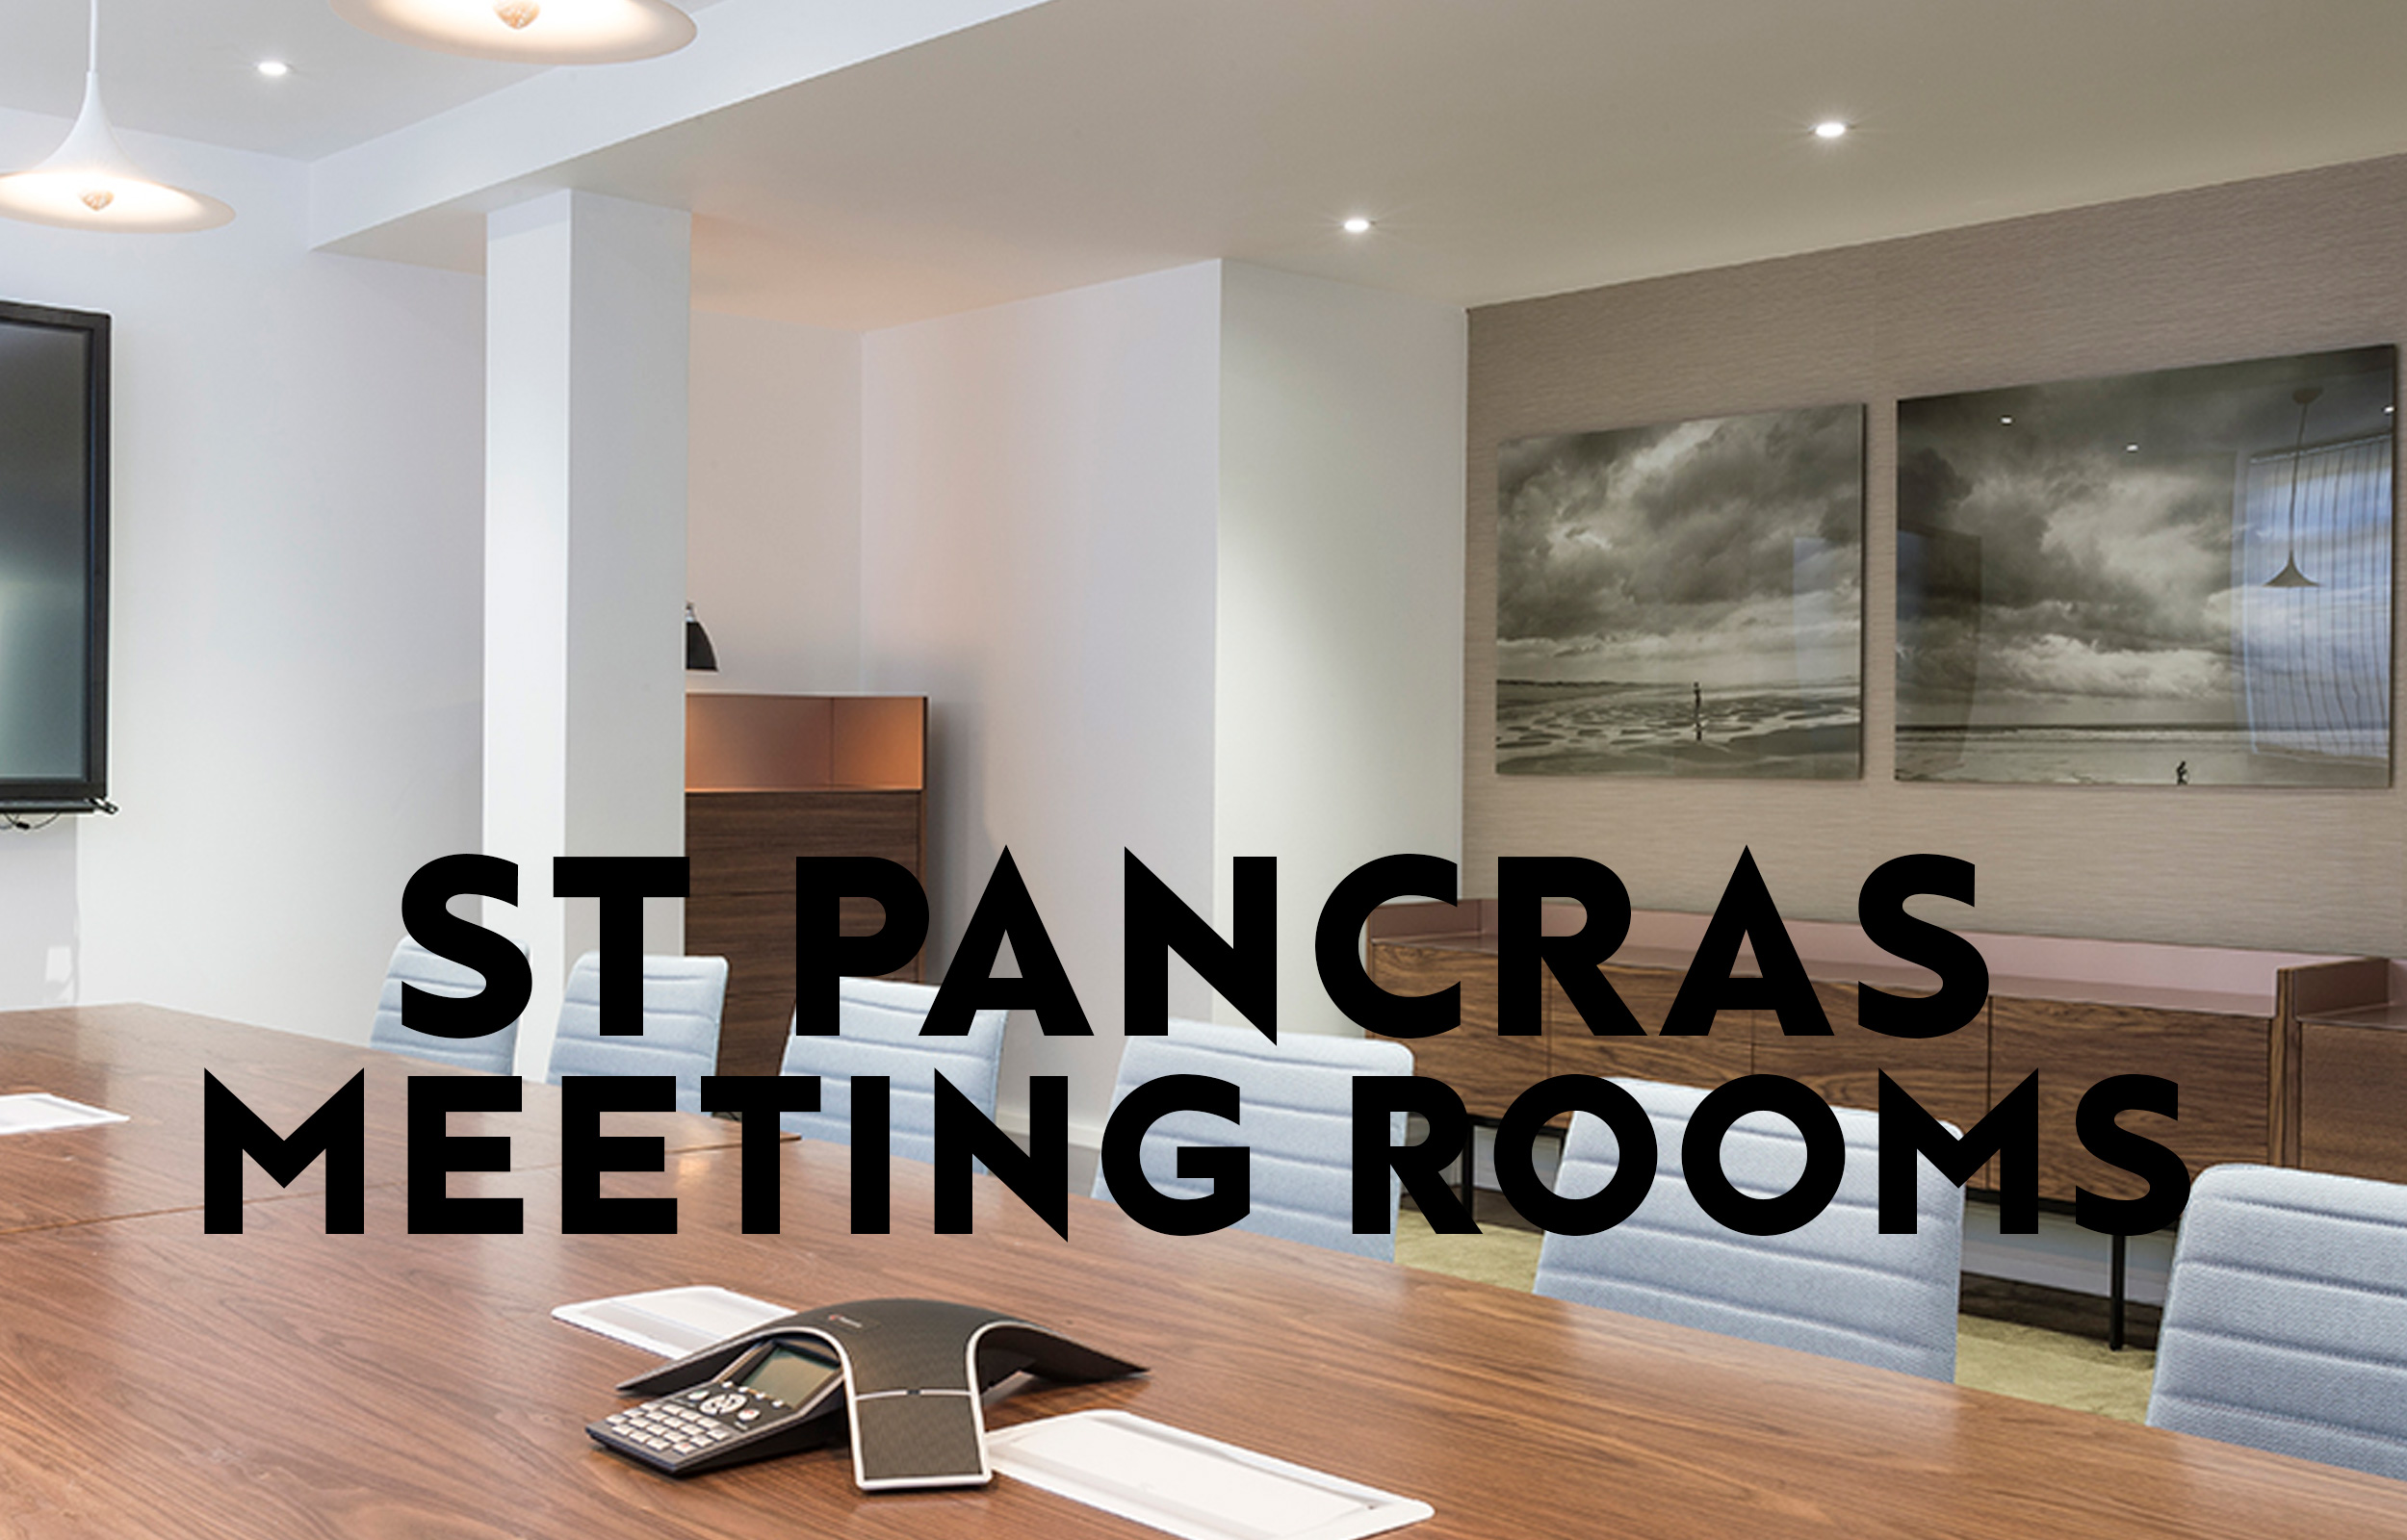 St Pancras Meeting Rooms